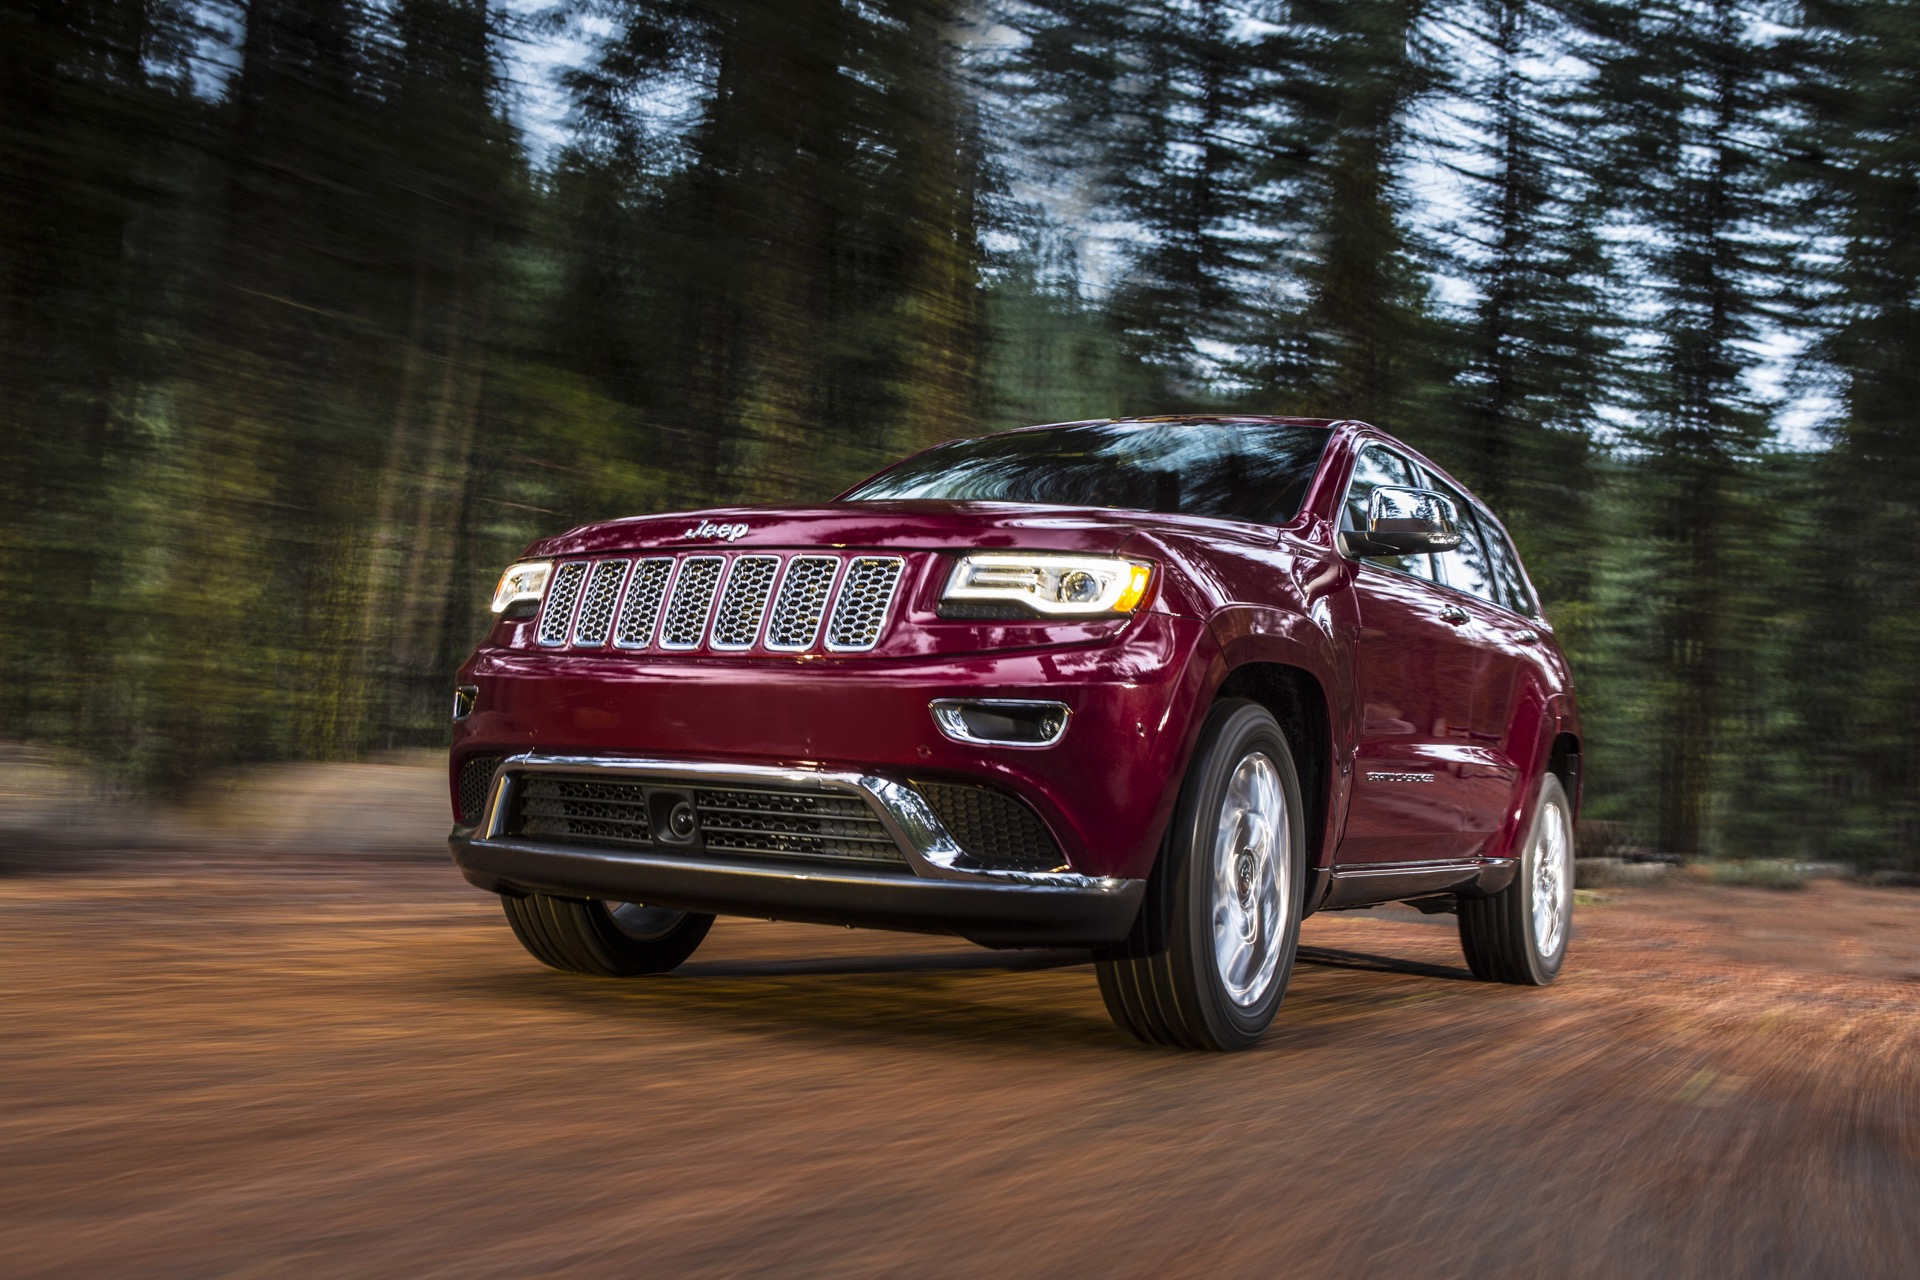 2016 jeep grand cherokee recalled for transmission problem, over